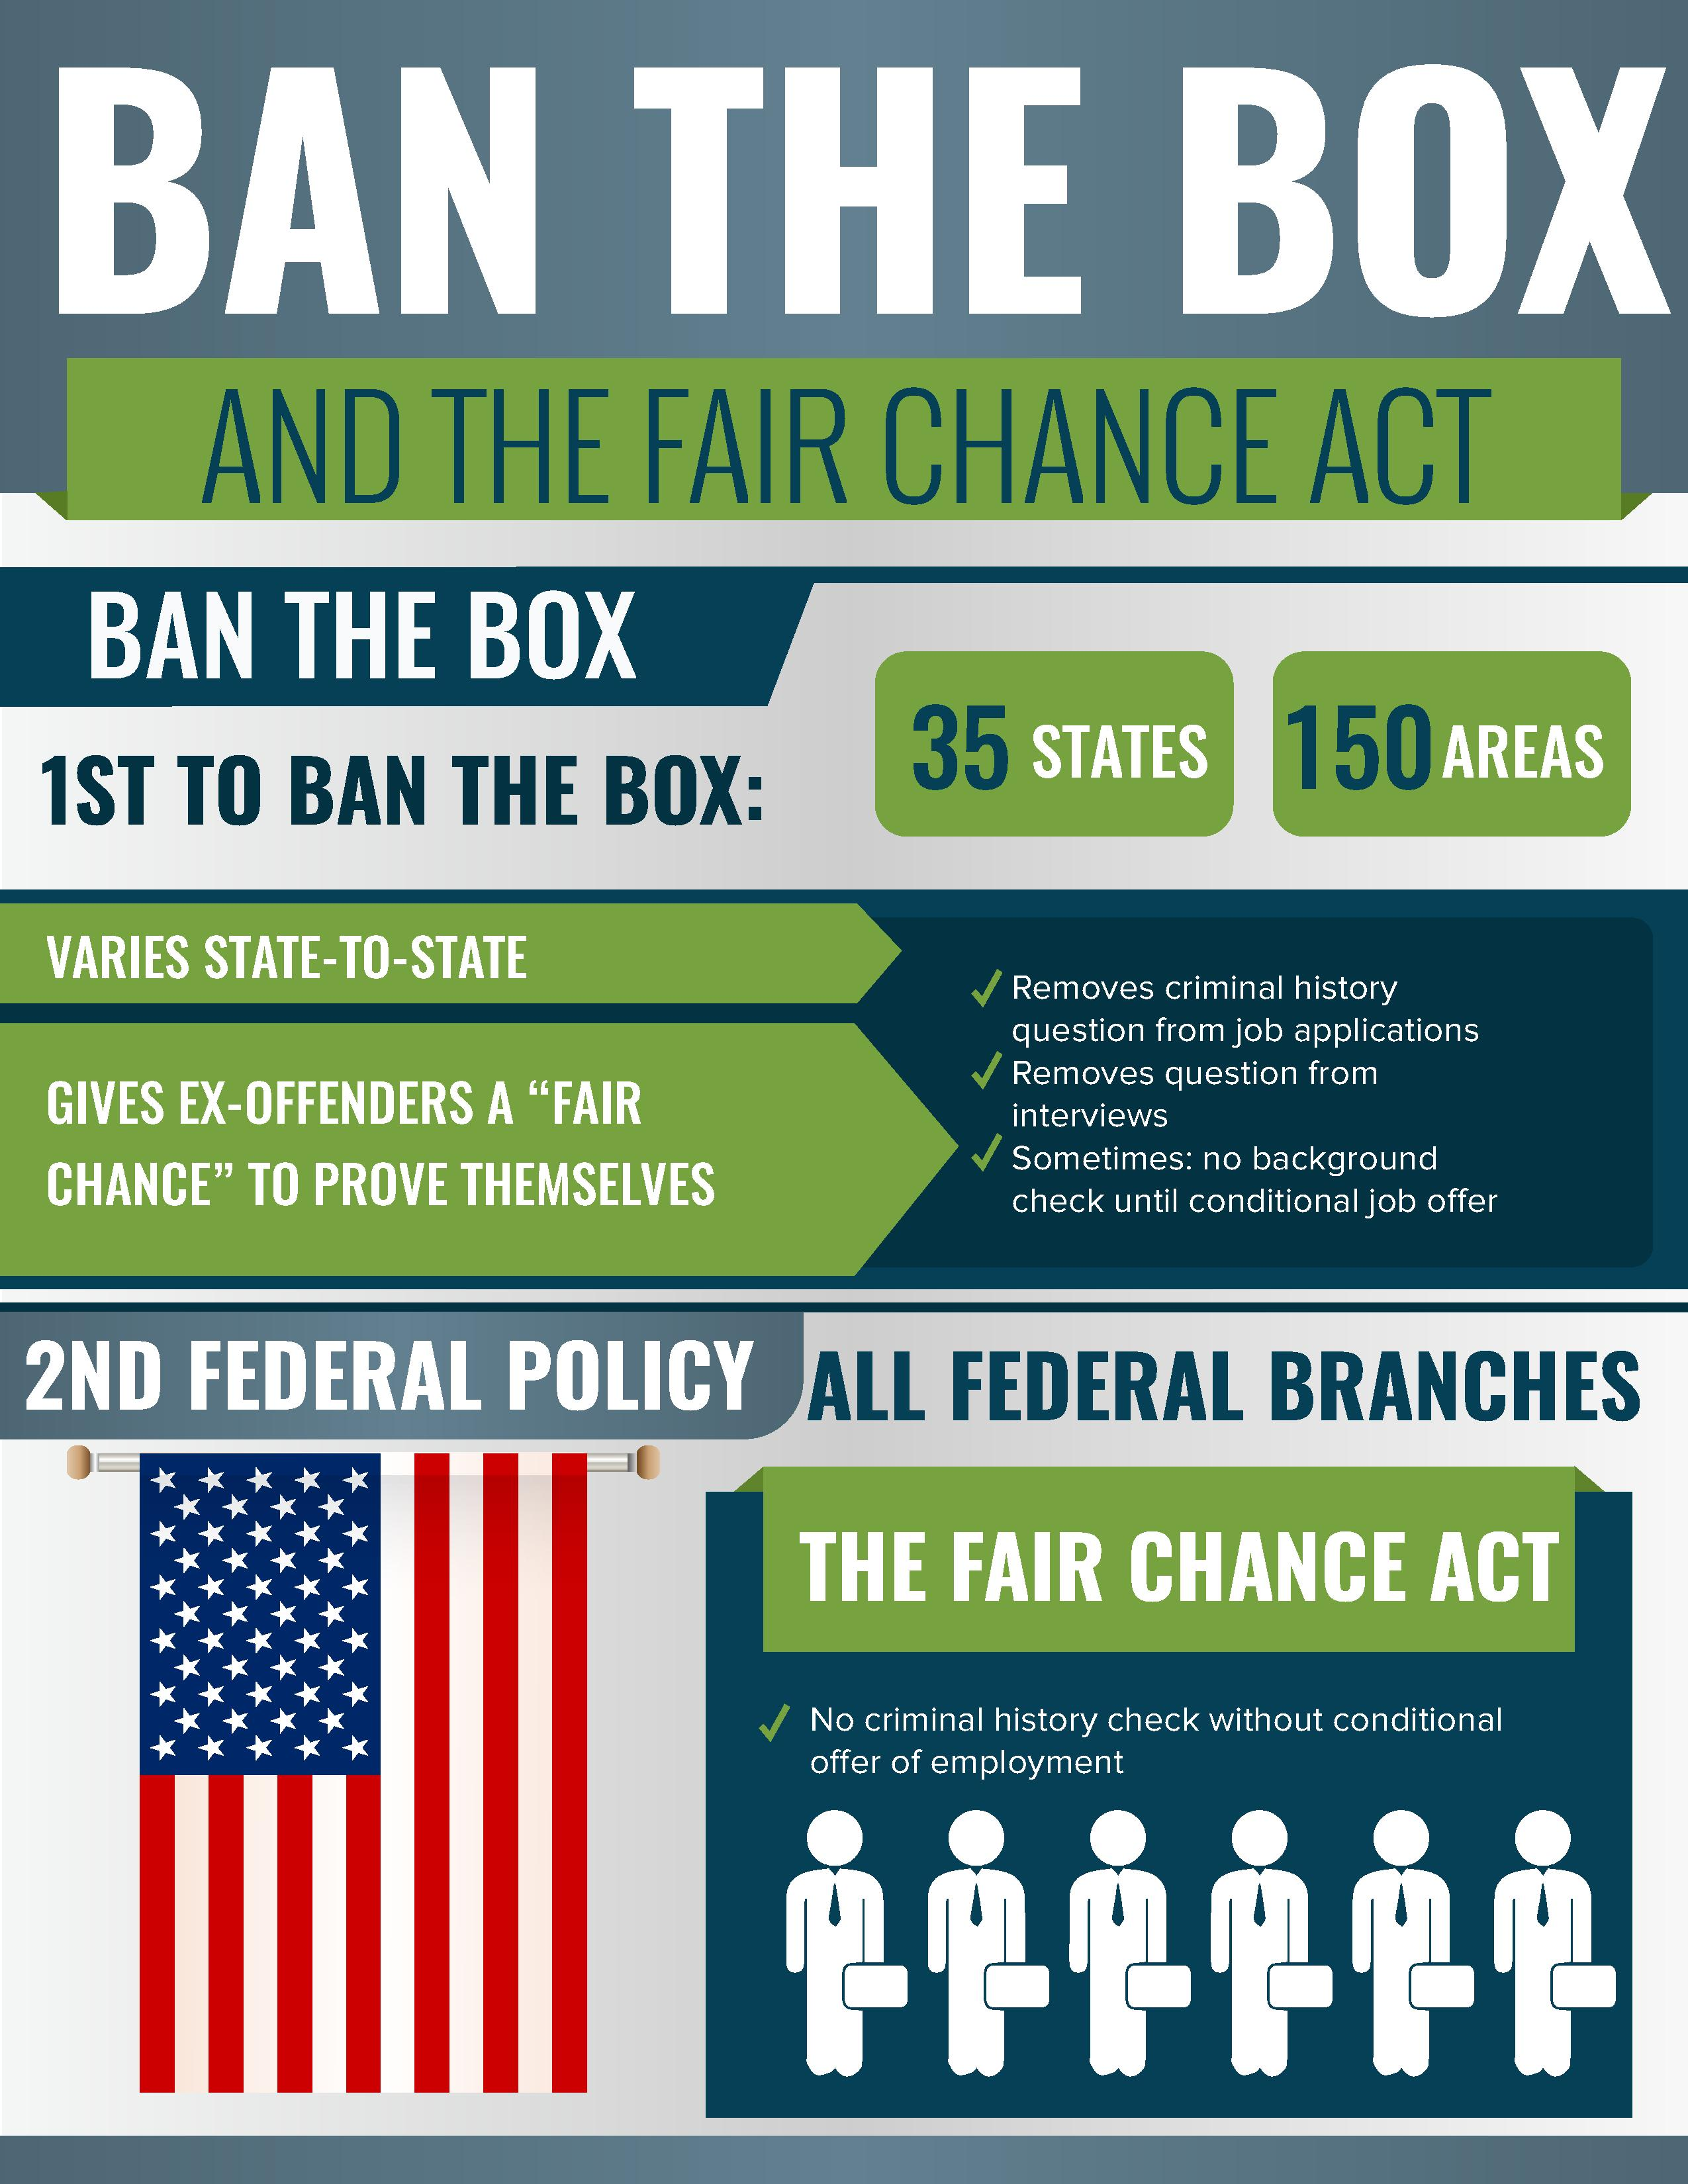 The Fair Chance Act and Ban the Box Legislation